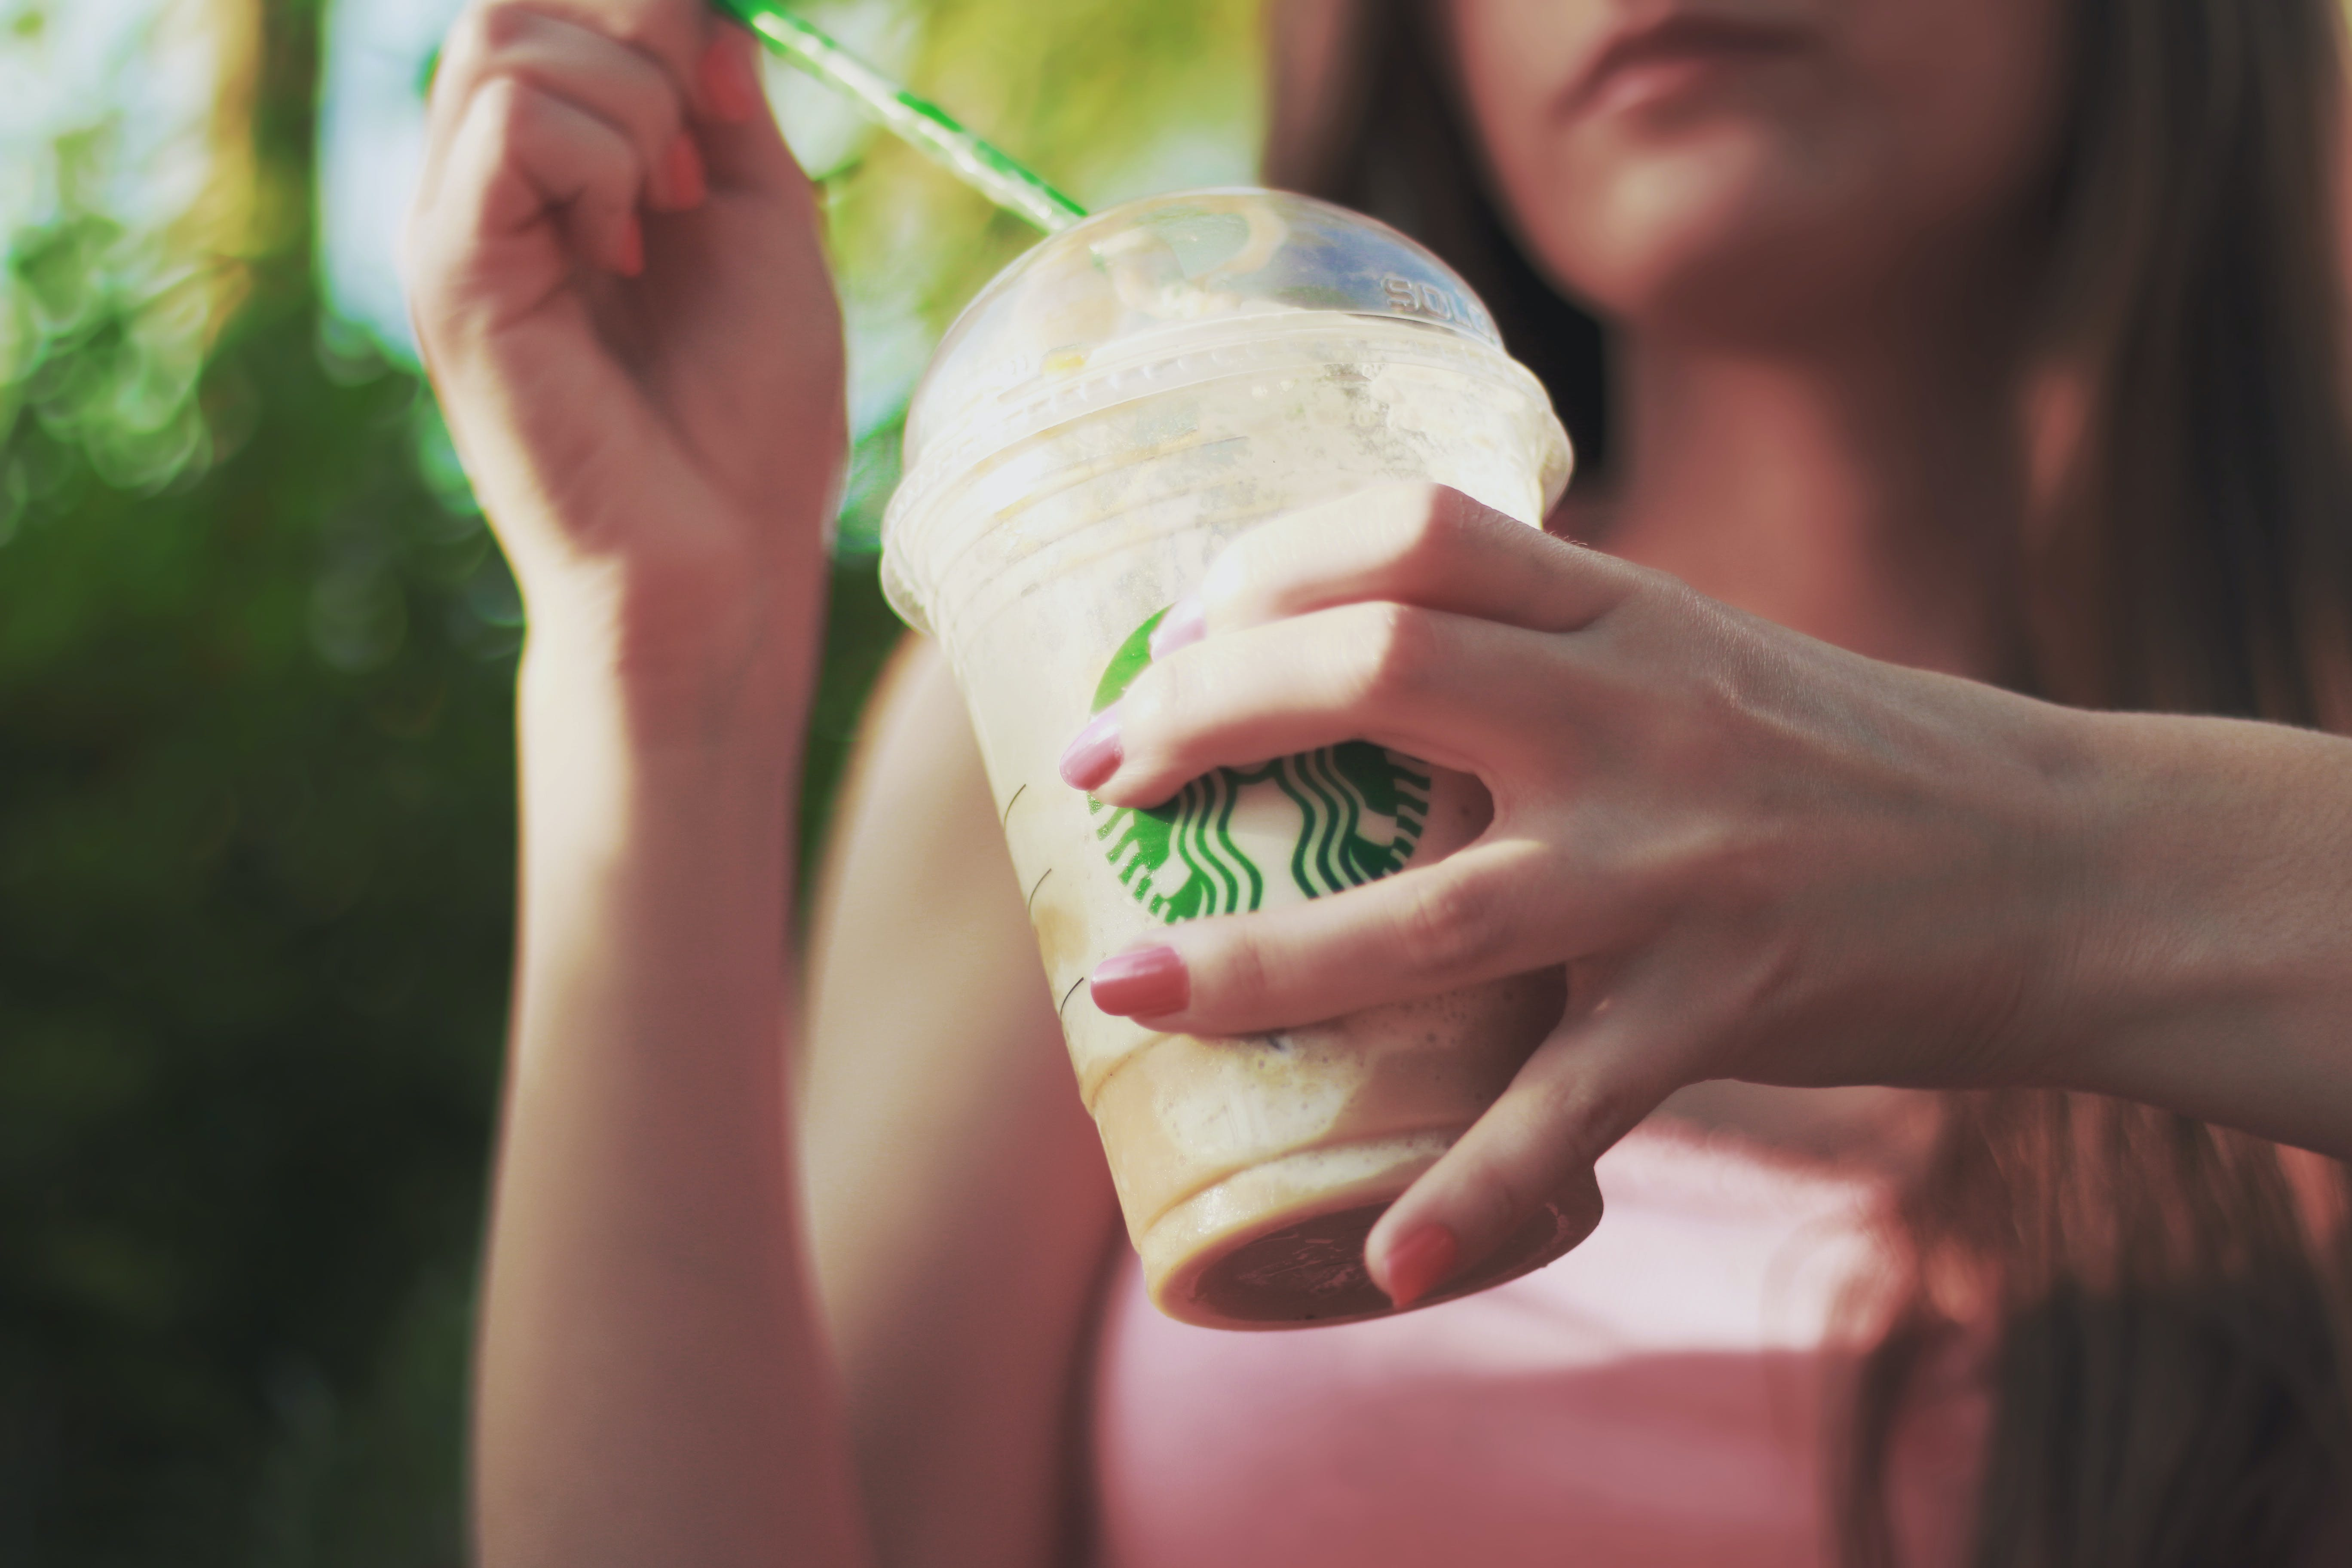 Woman Holding Starbucks Coffee Cup